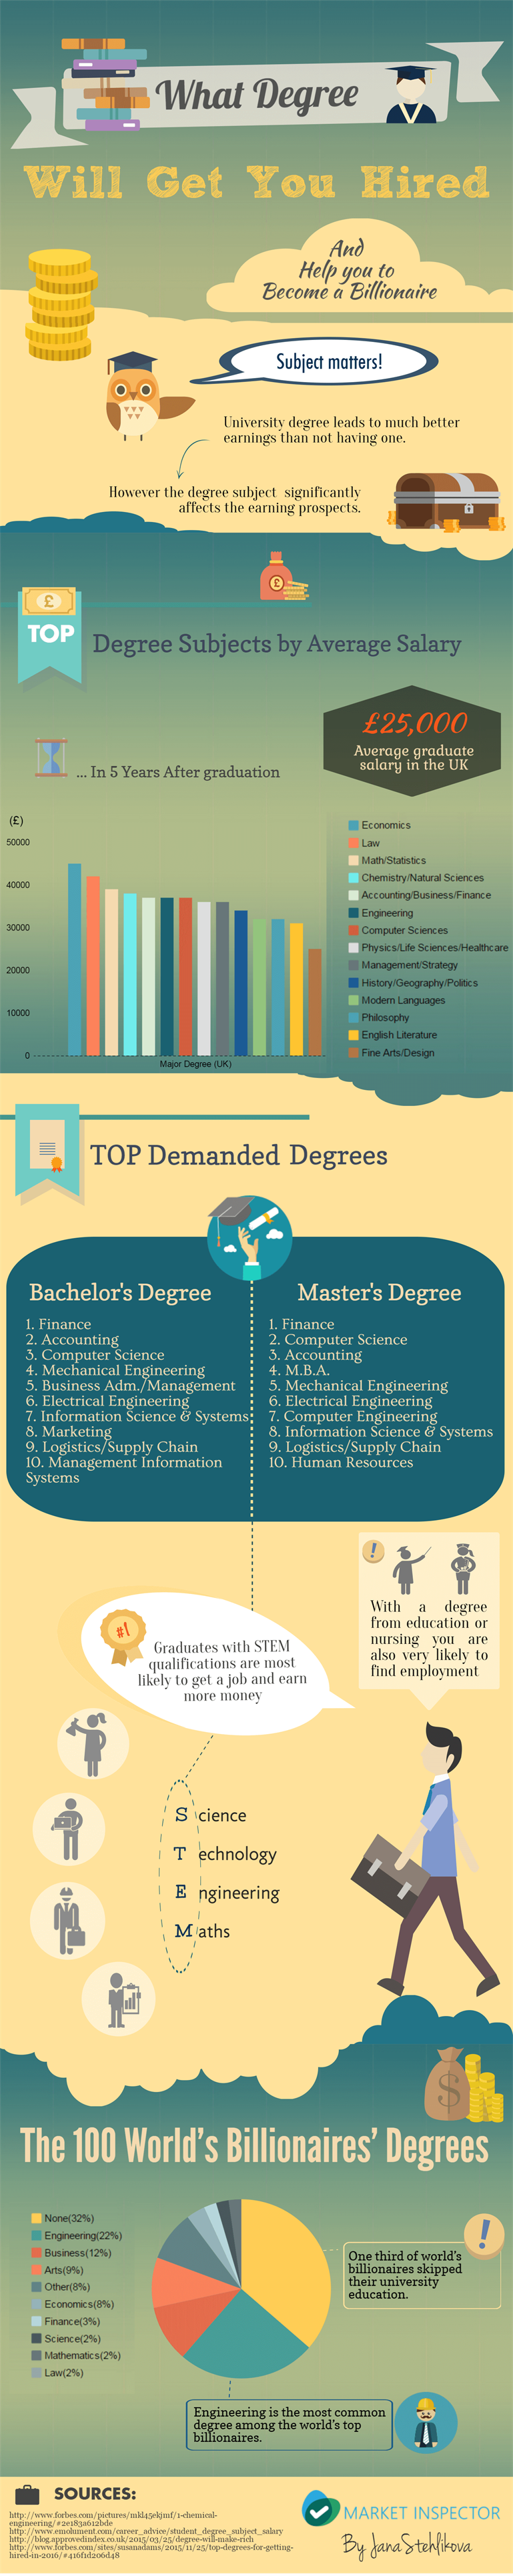 Degree-to-Get-Hired